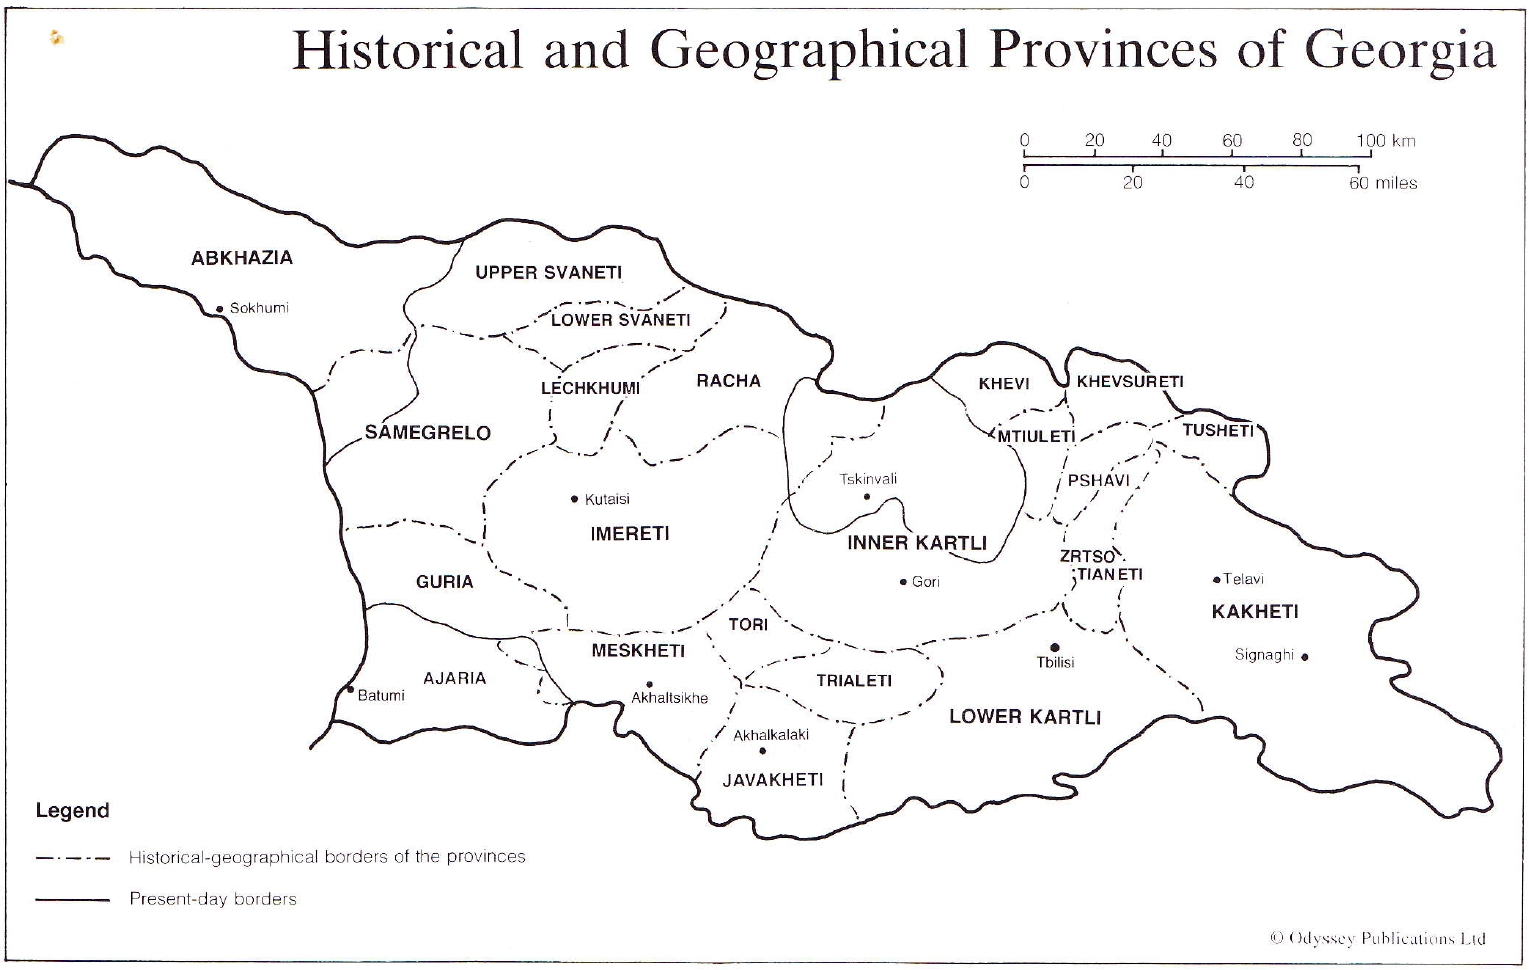 Historical anf Geographical provinces of Georgia